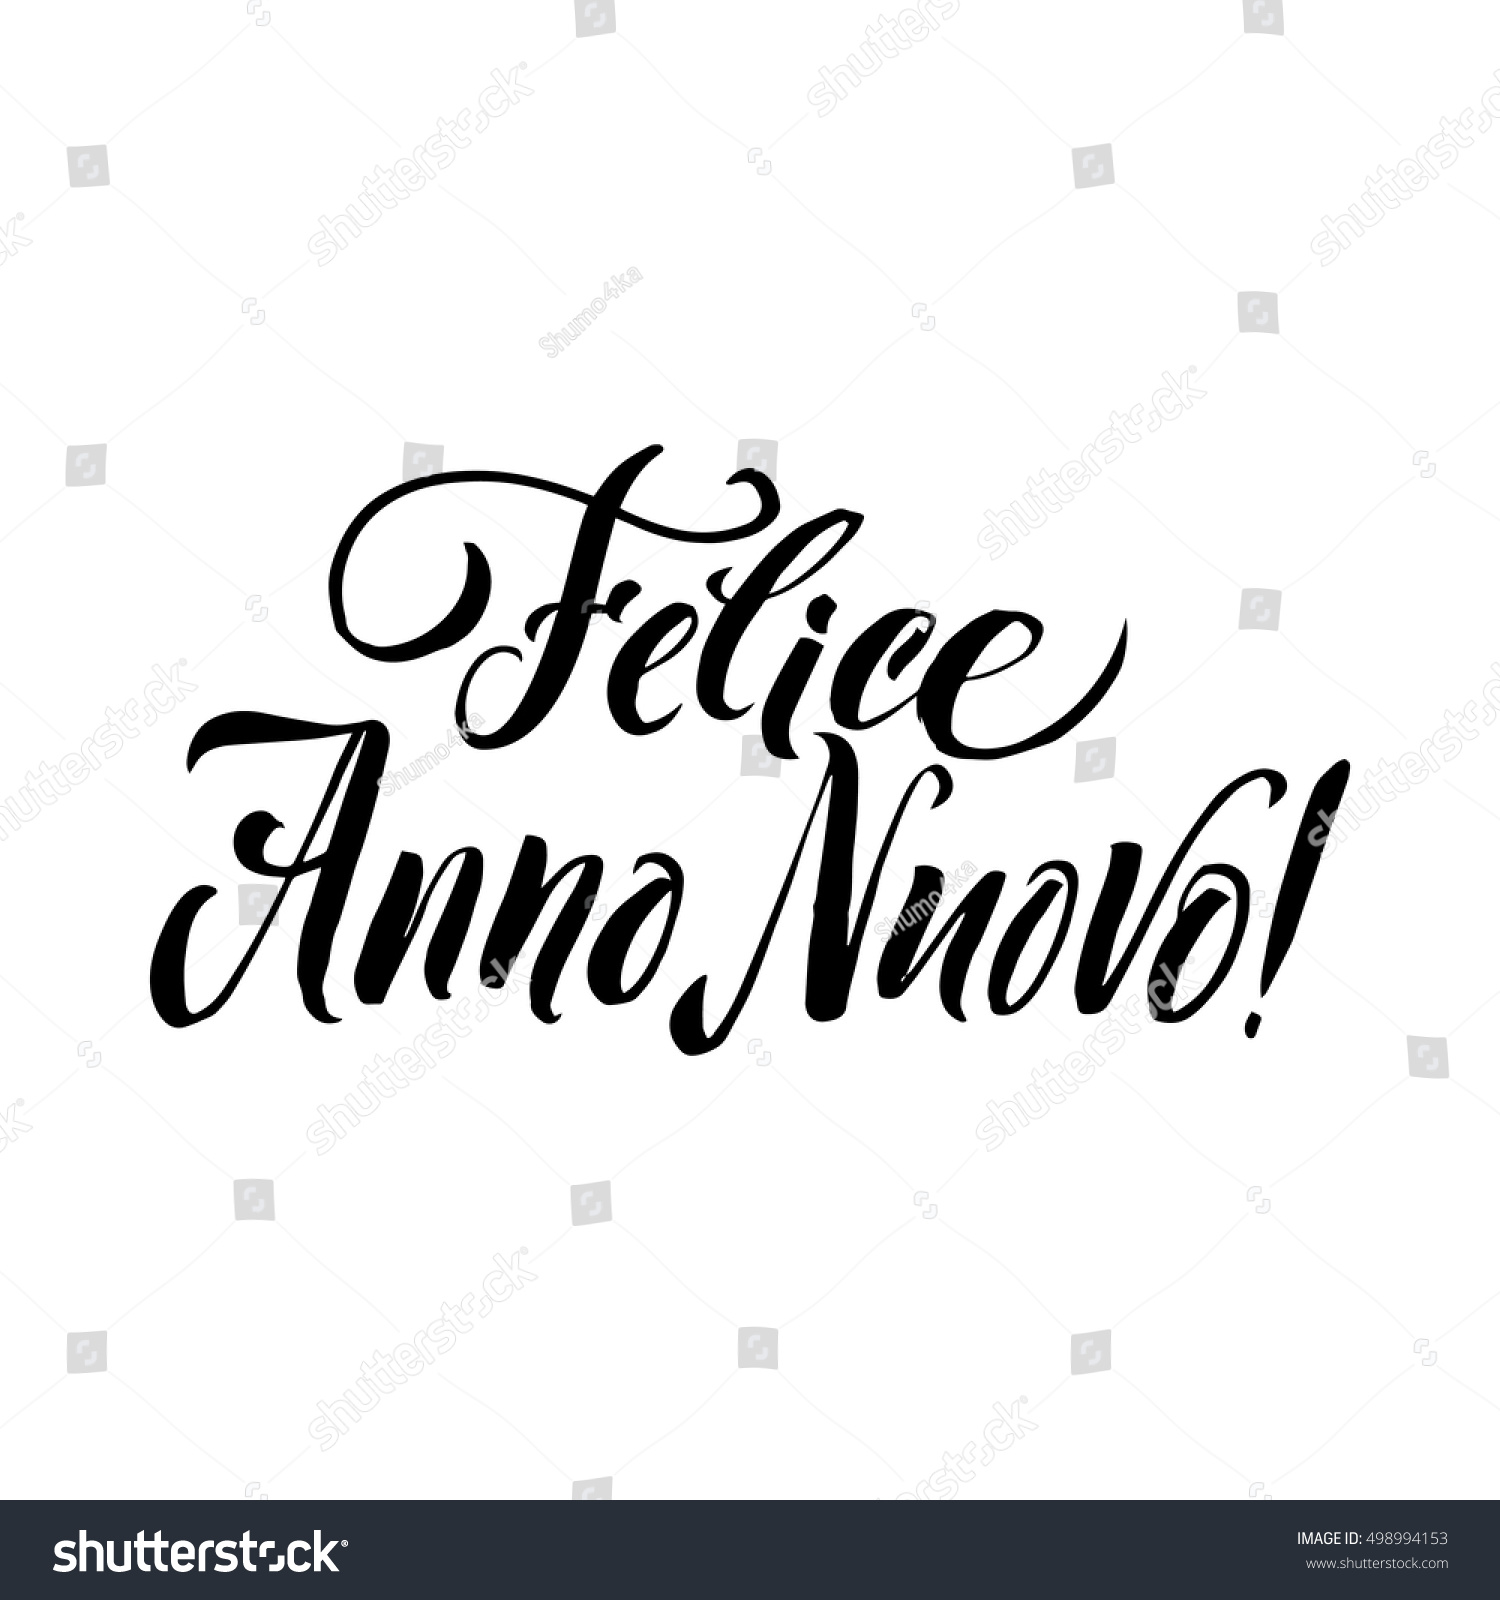 Happy new year stroke italian calligraphy stock vector royalty free happy new year stroke italian calligraphy greeting card black typography on white background m4hsunfo